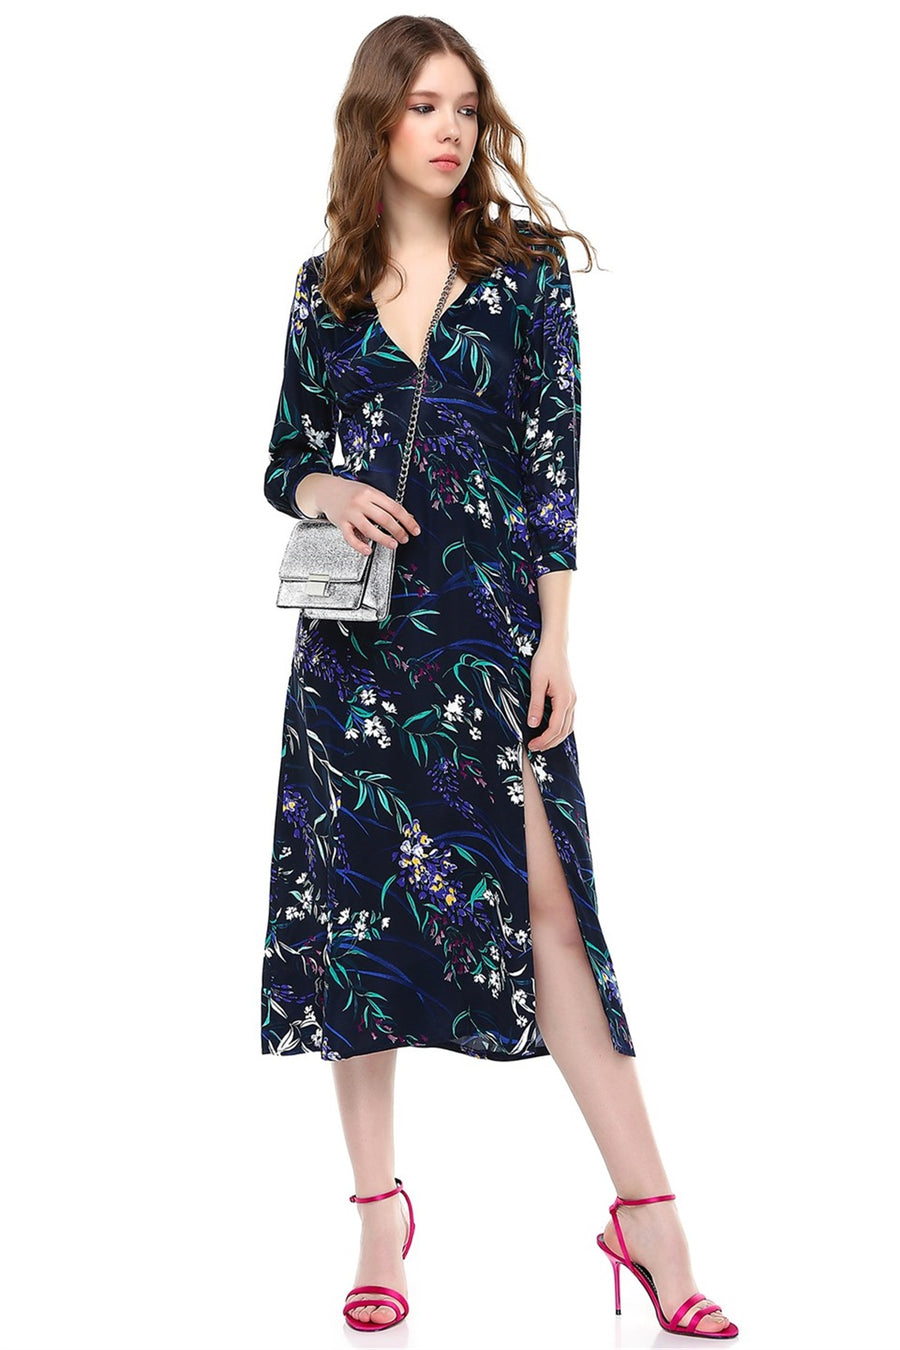 Dark Blue Flower Print Dress